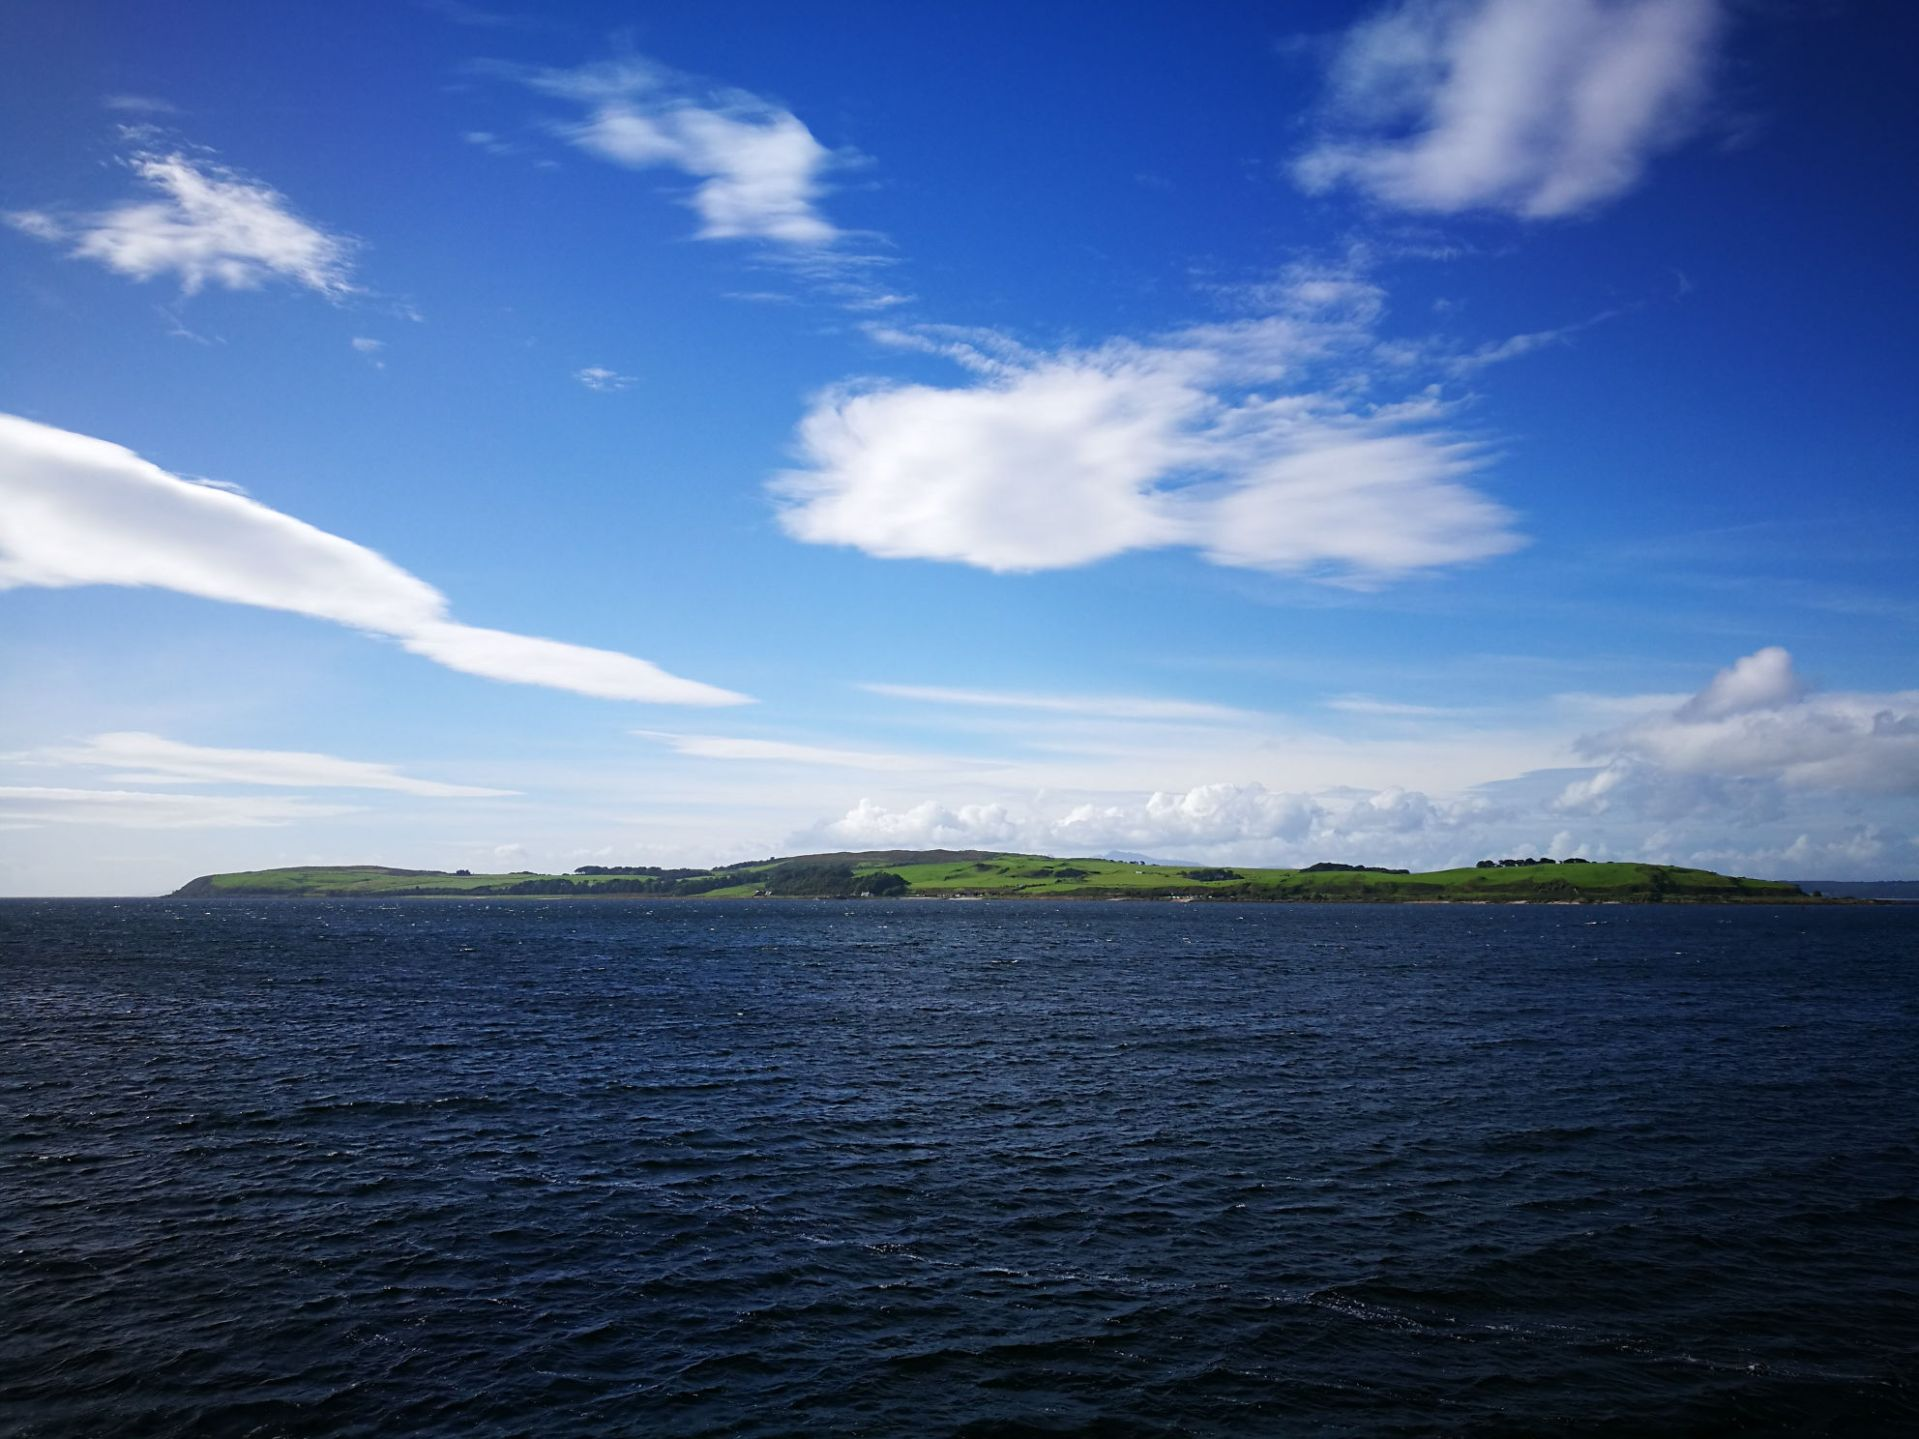 Isle of Cumbrae, Ayrshire, Scotland